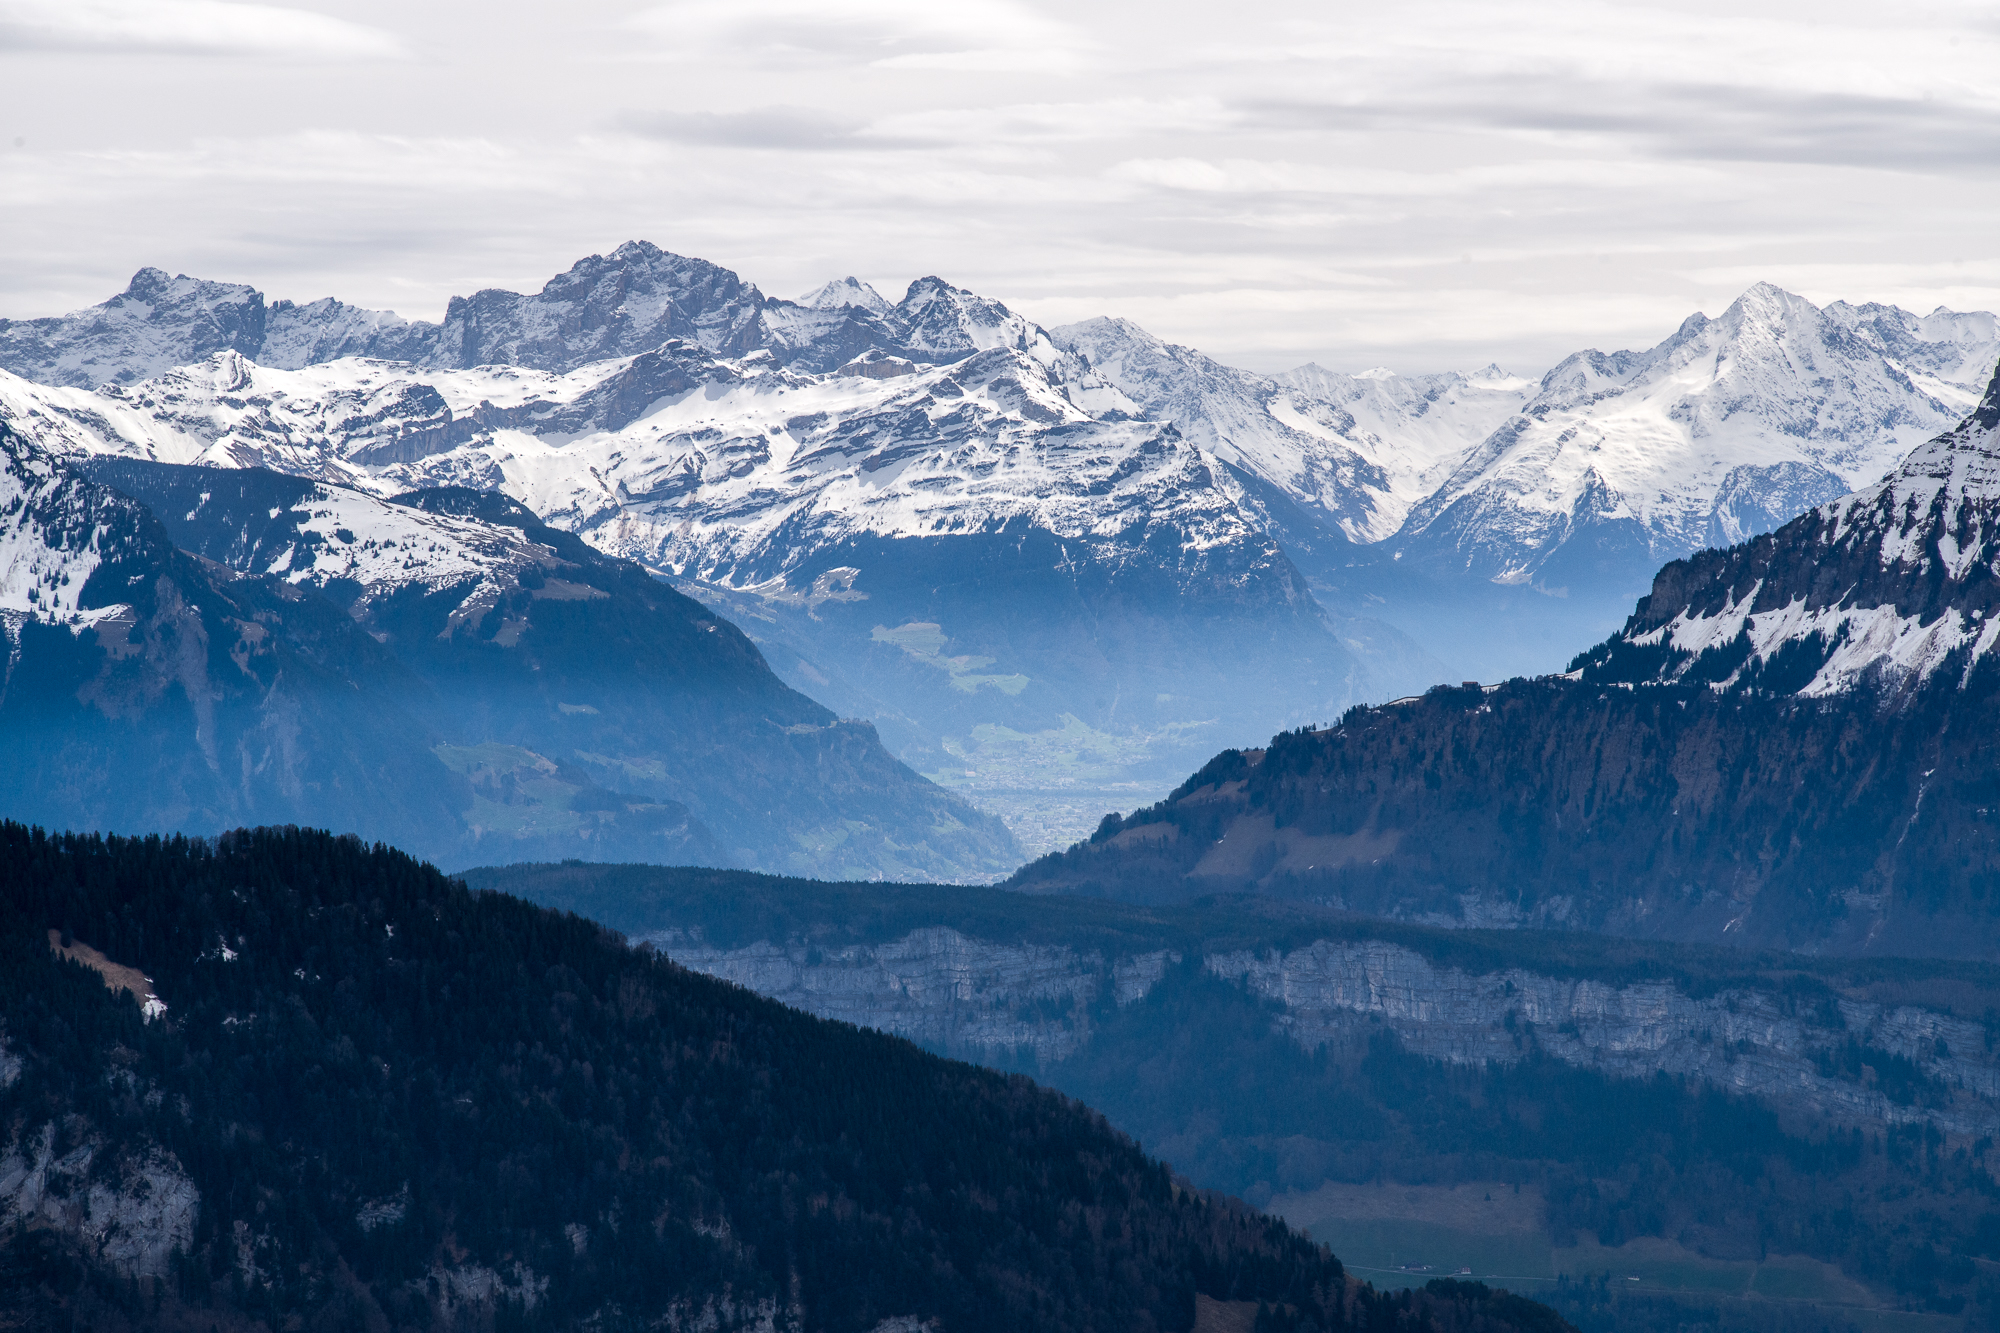 View of the Alps from Rigi Kaltbad